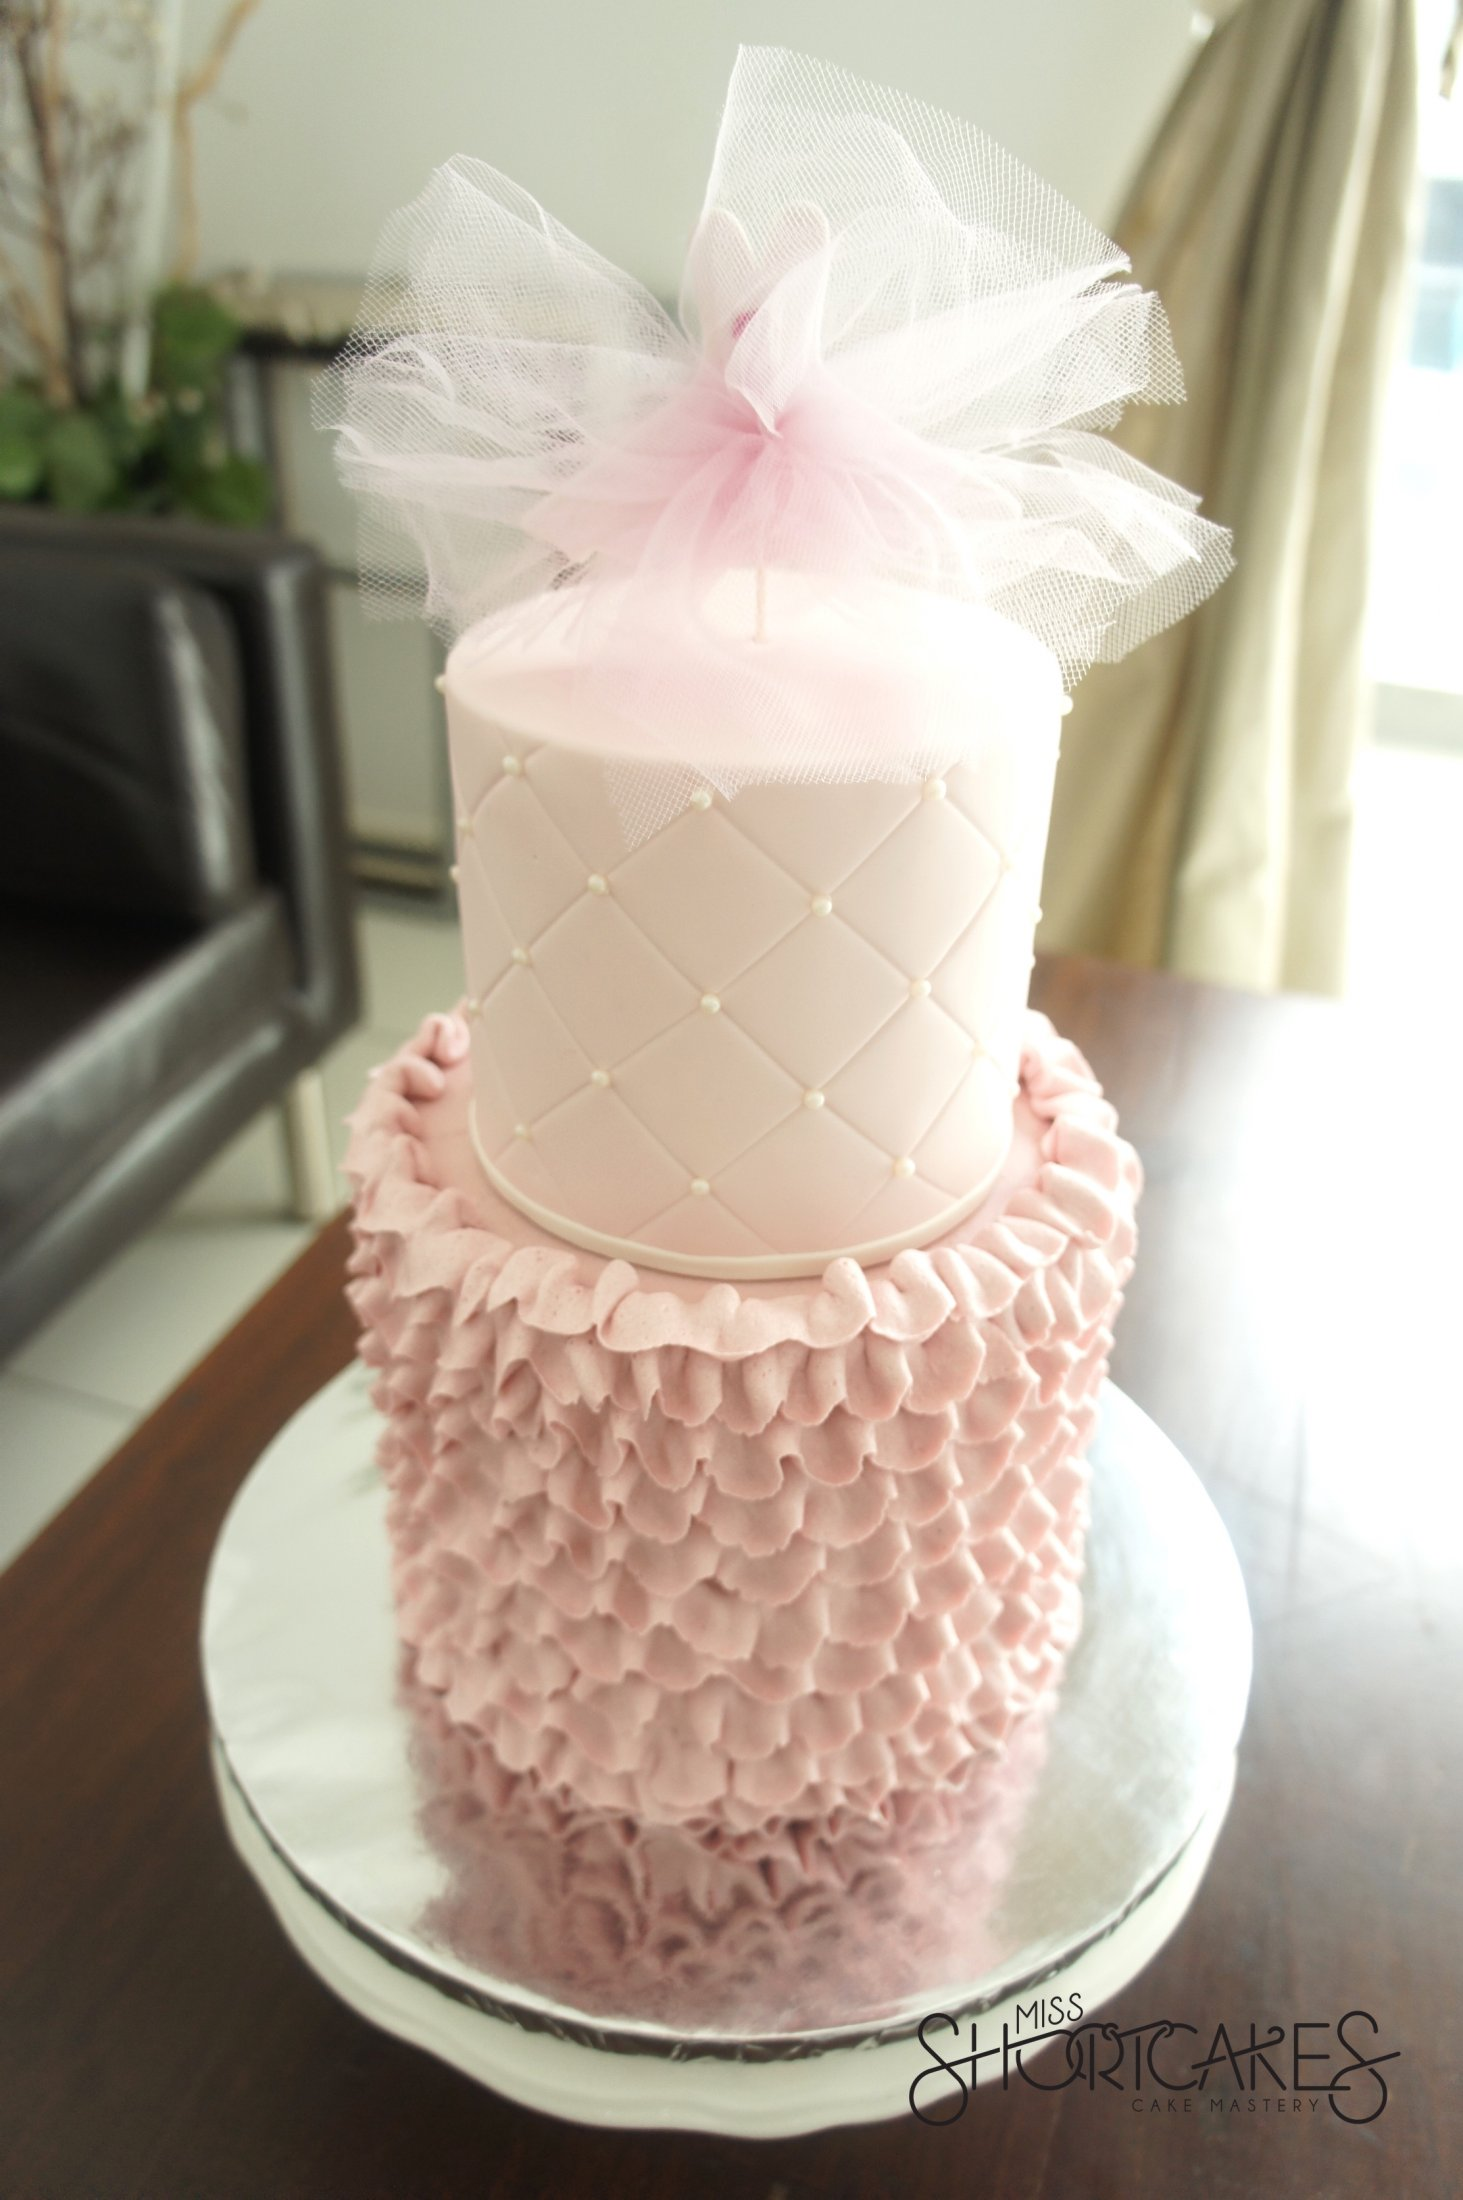 how to make ruffles on a cake with buttercream